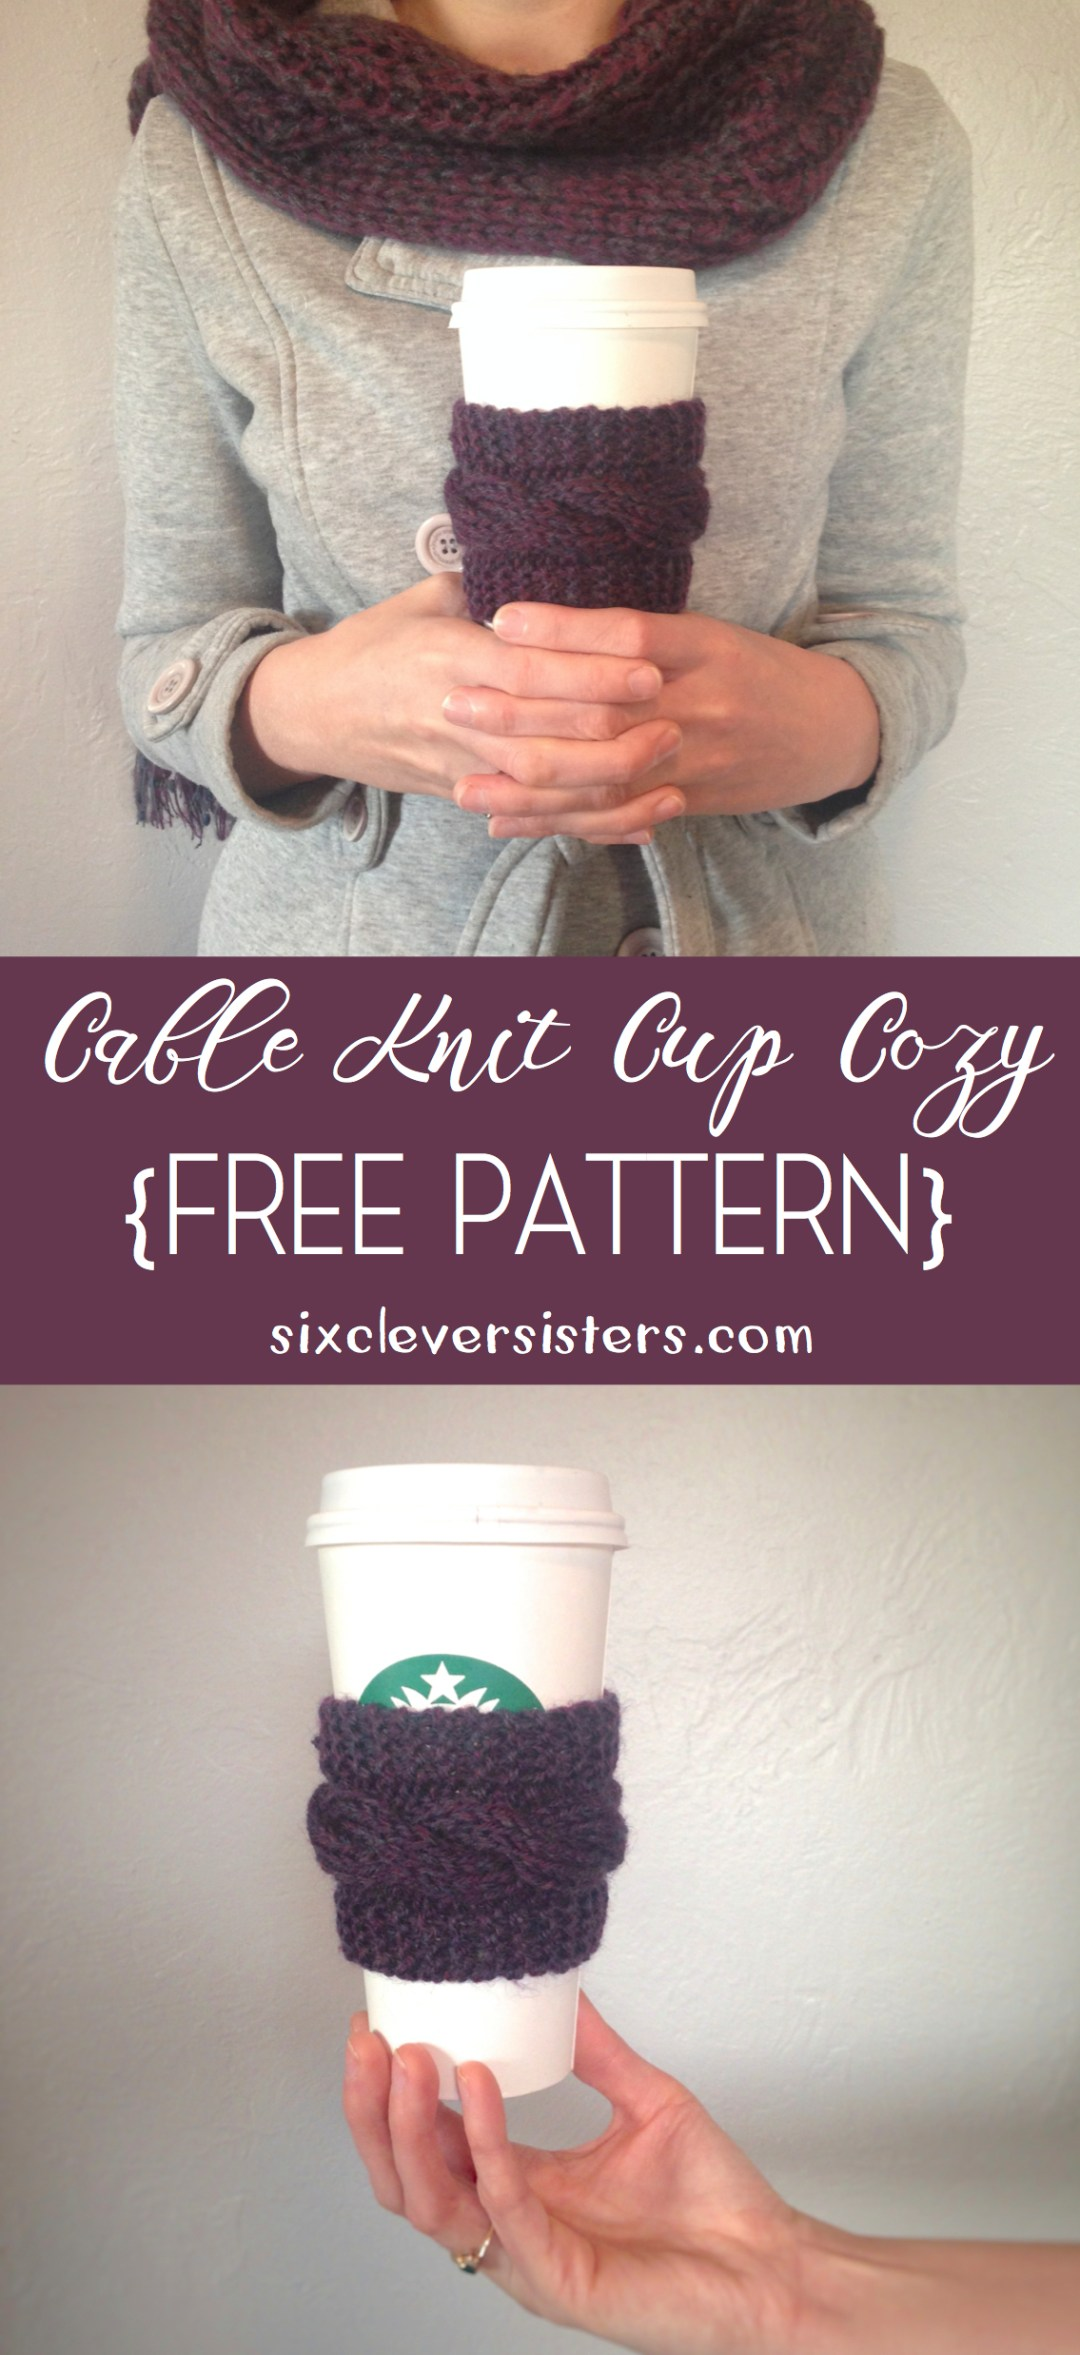 Free Pattern for {Cable Knit Cup Cozy}